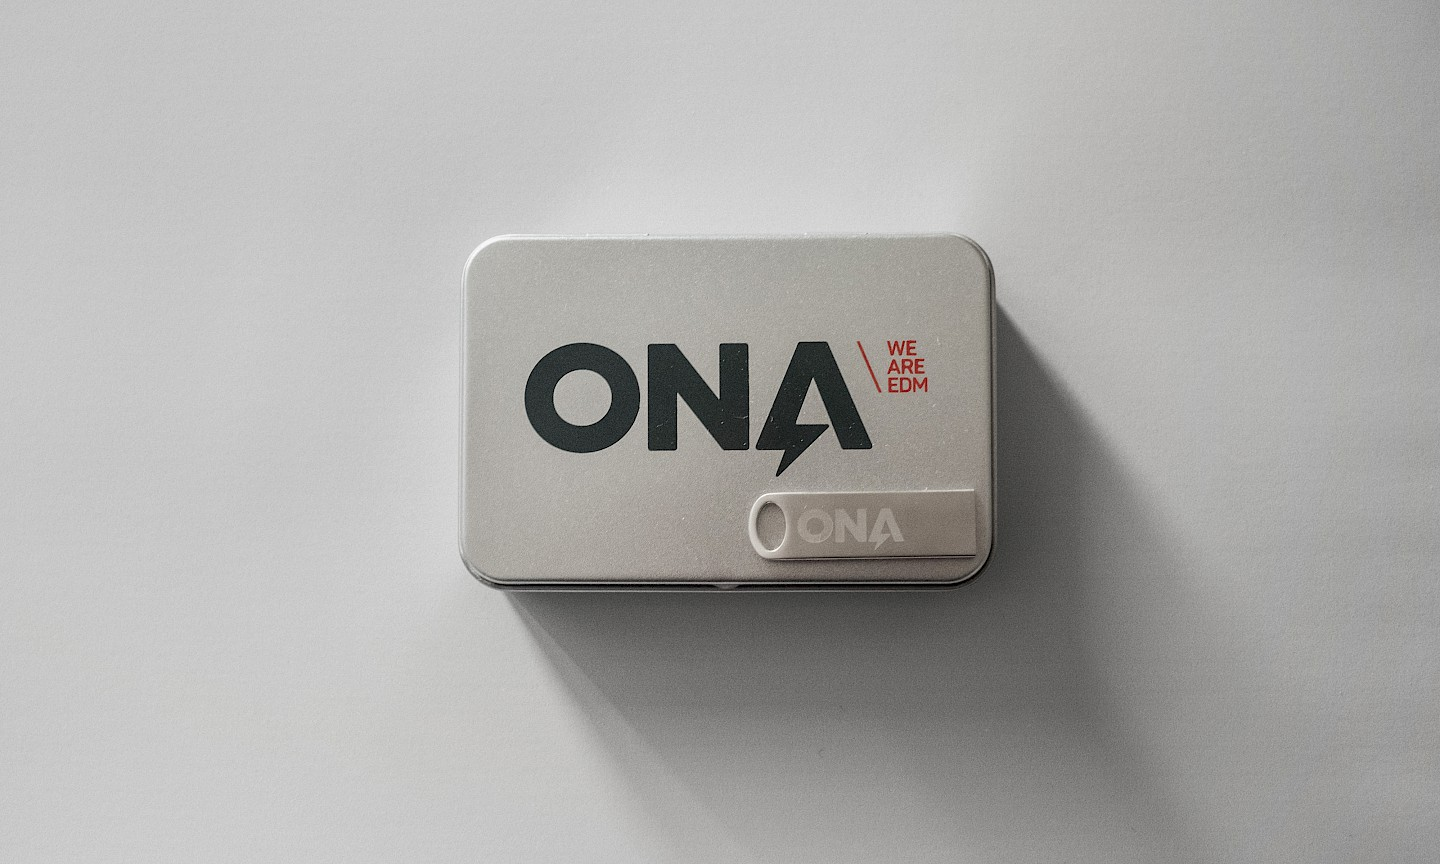 digital move ona technology design spaces print narrative 01 branding